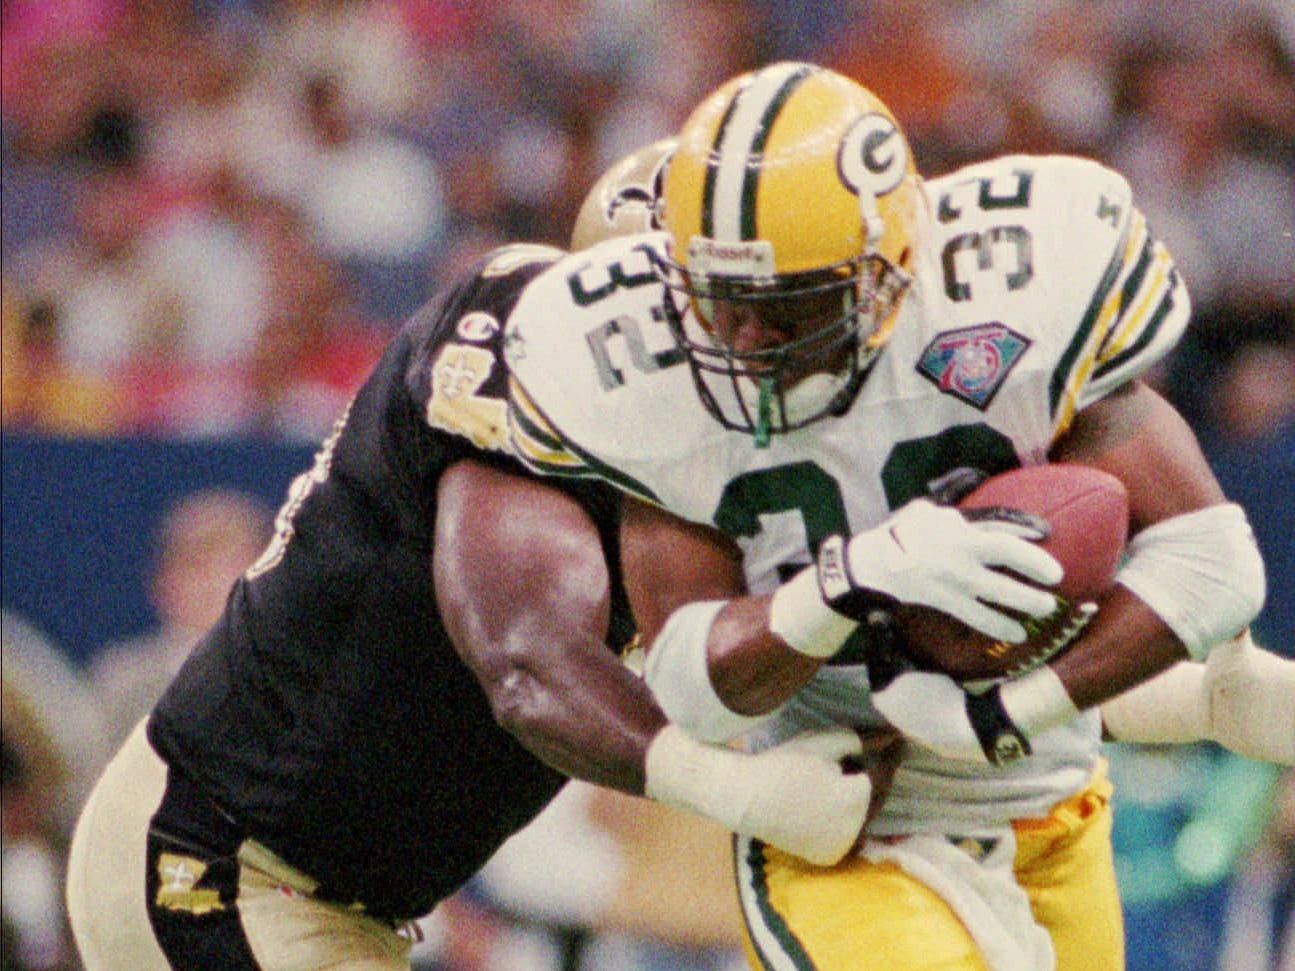 Green Bay Packers running back Reggie Cobb (32) tries to elude New Orleans Saints defender Frank Warren (73) during the first half Friday night, Aug. 19, 1994, in New Orleans. Cobb spun away from Warren and had a short gain on the play.